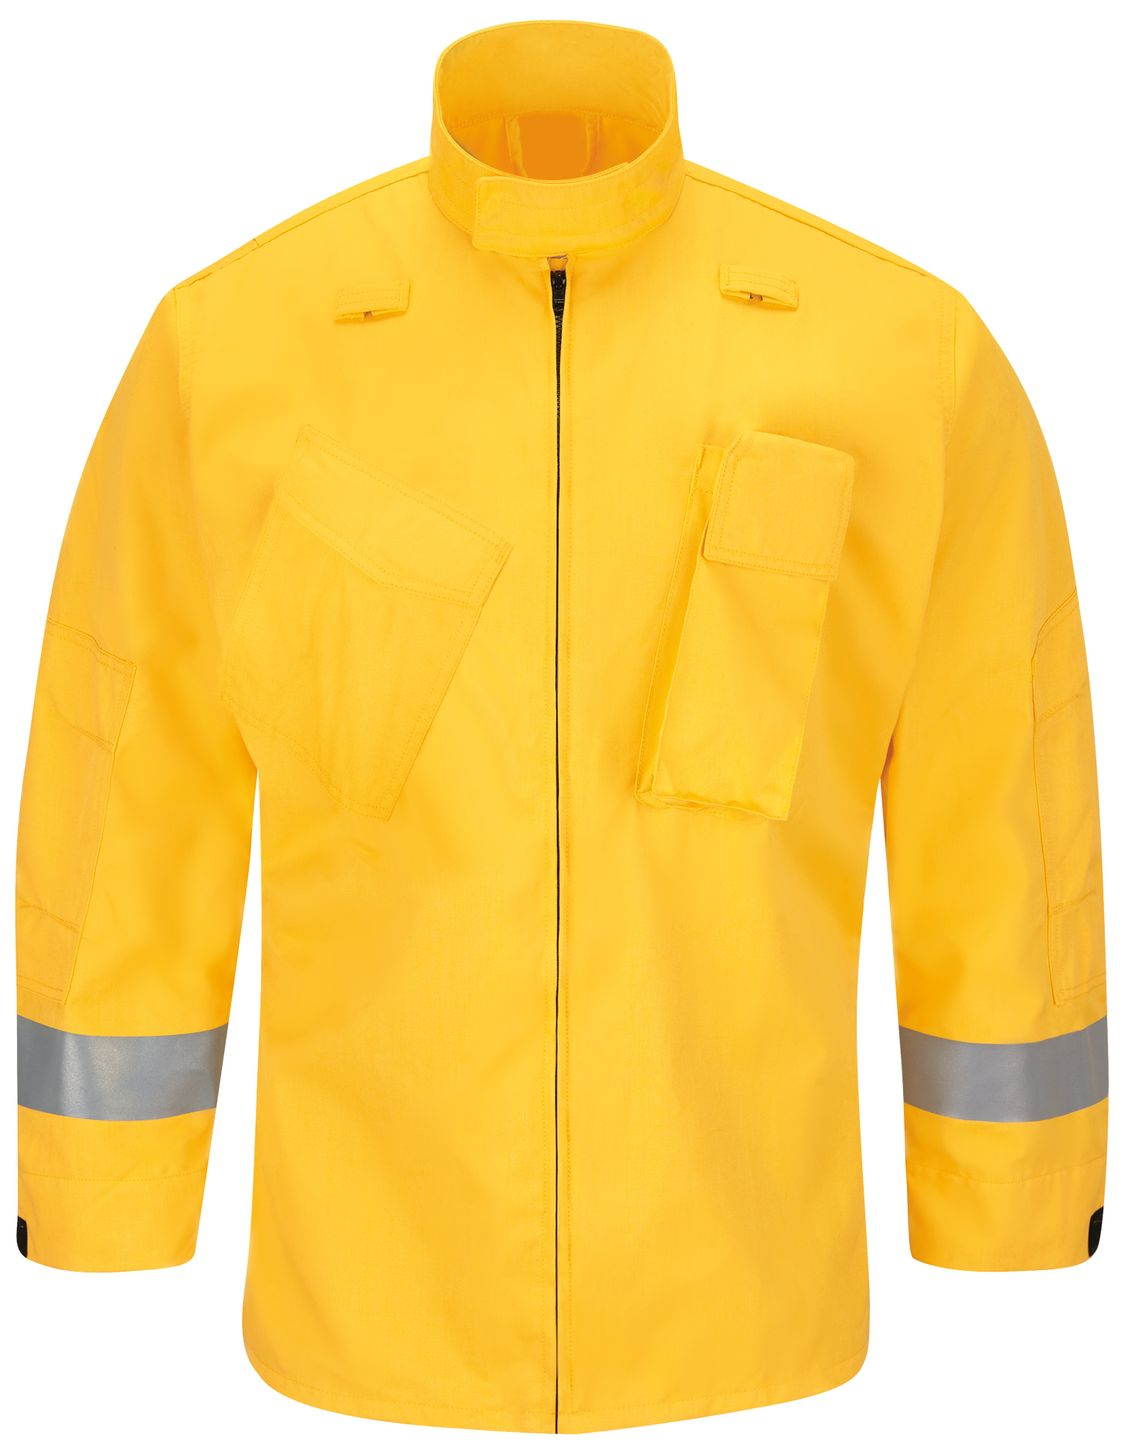 Workrite FR Jacket FW81, Relaxed Fit Wildland Yellow Front